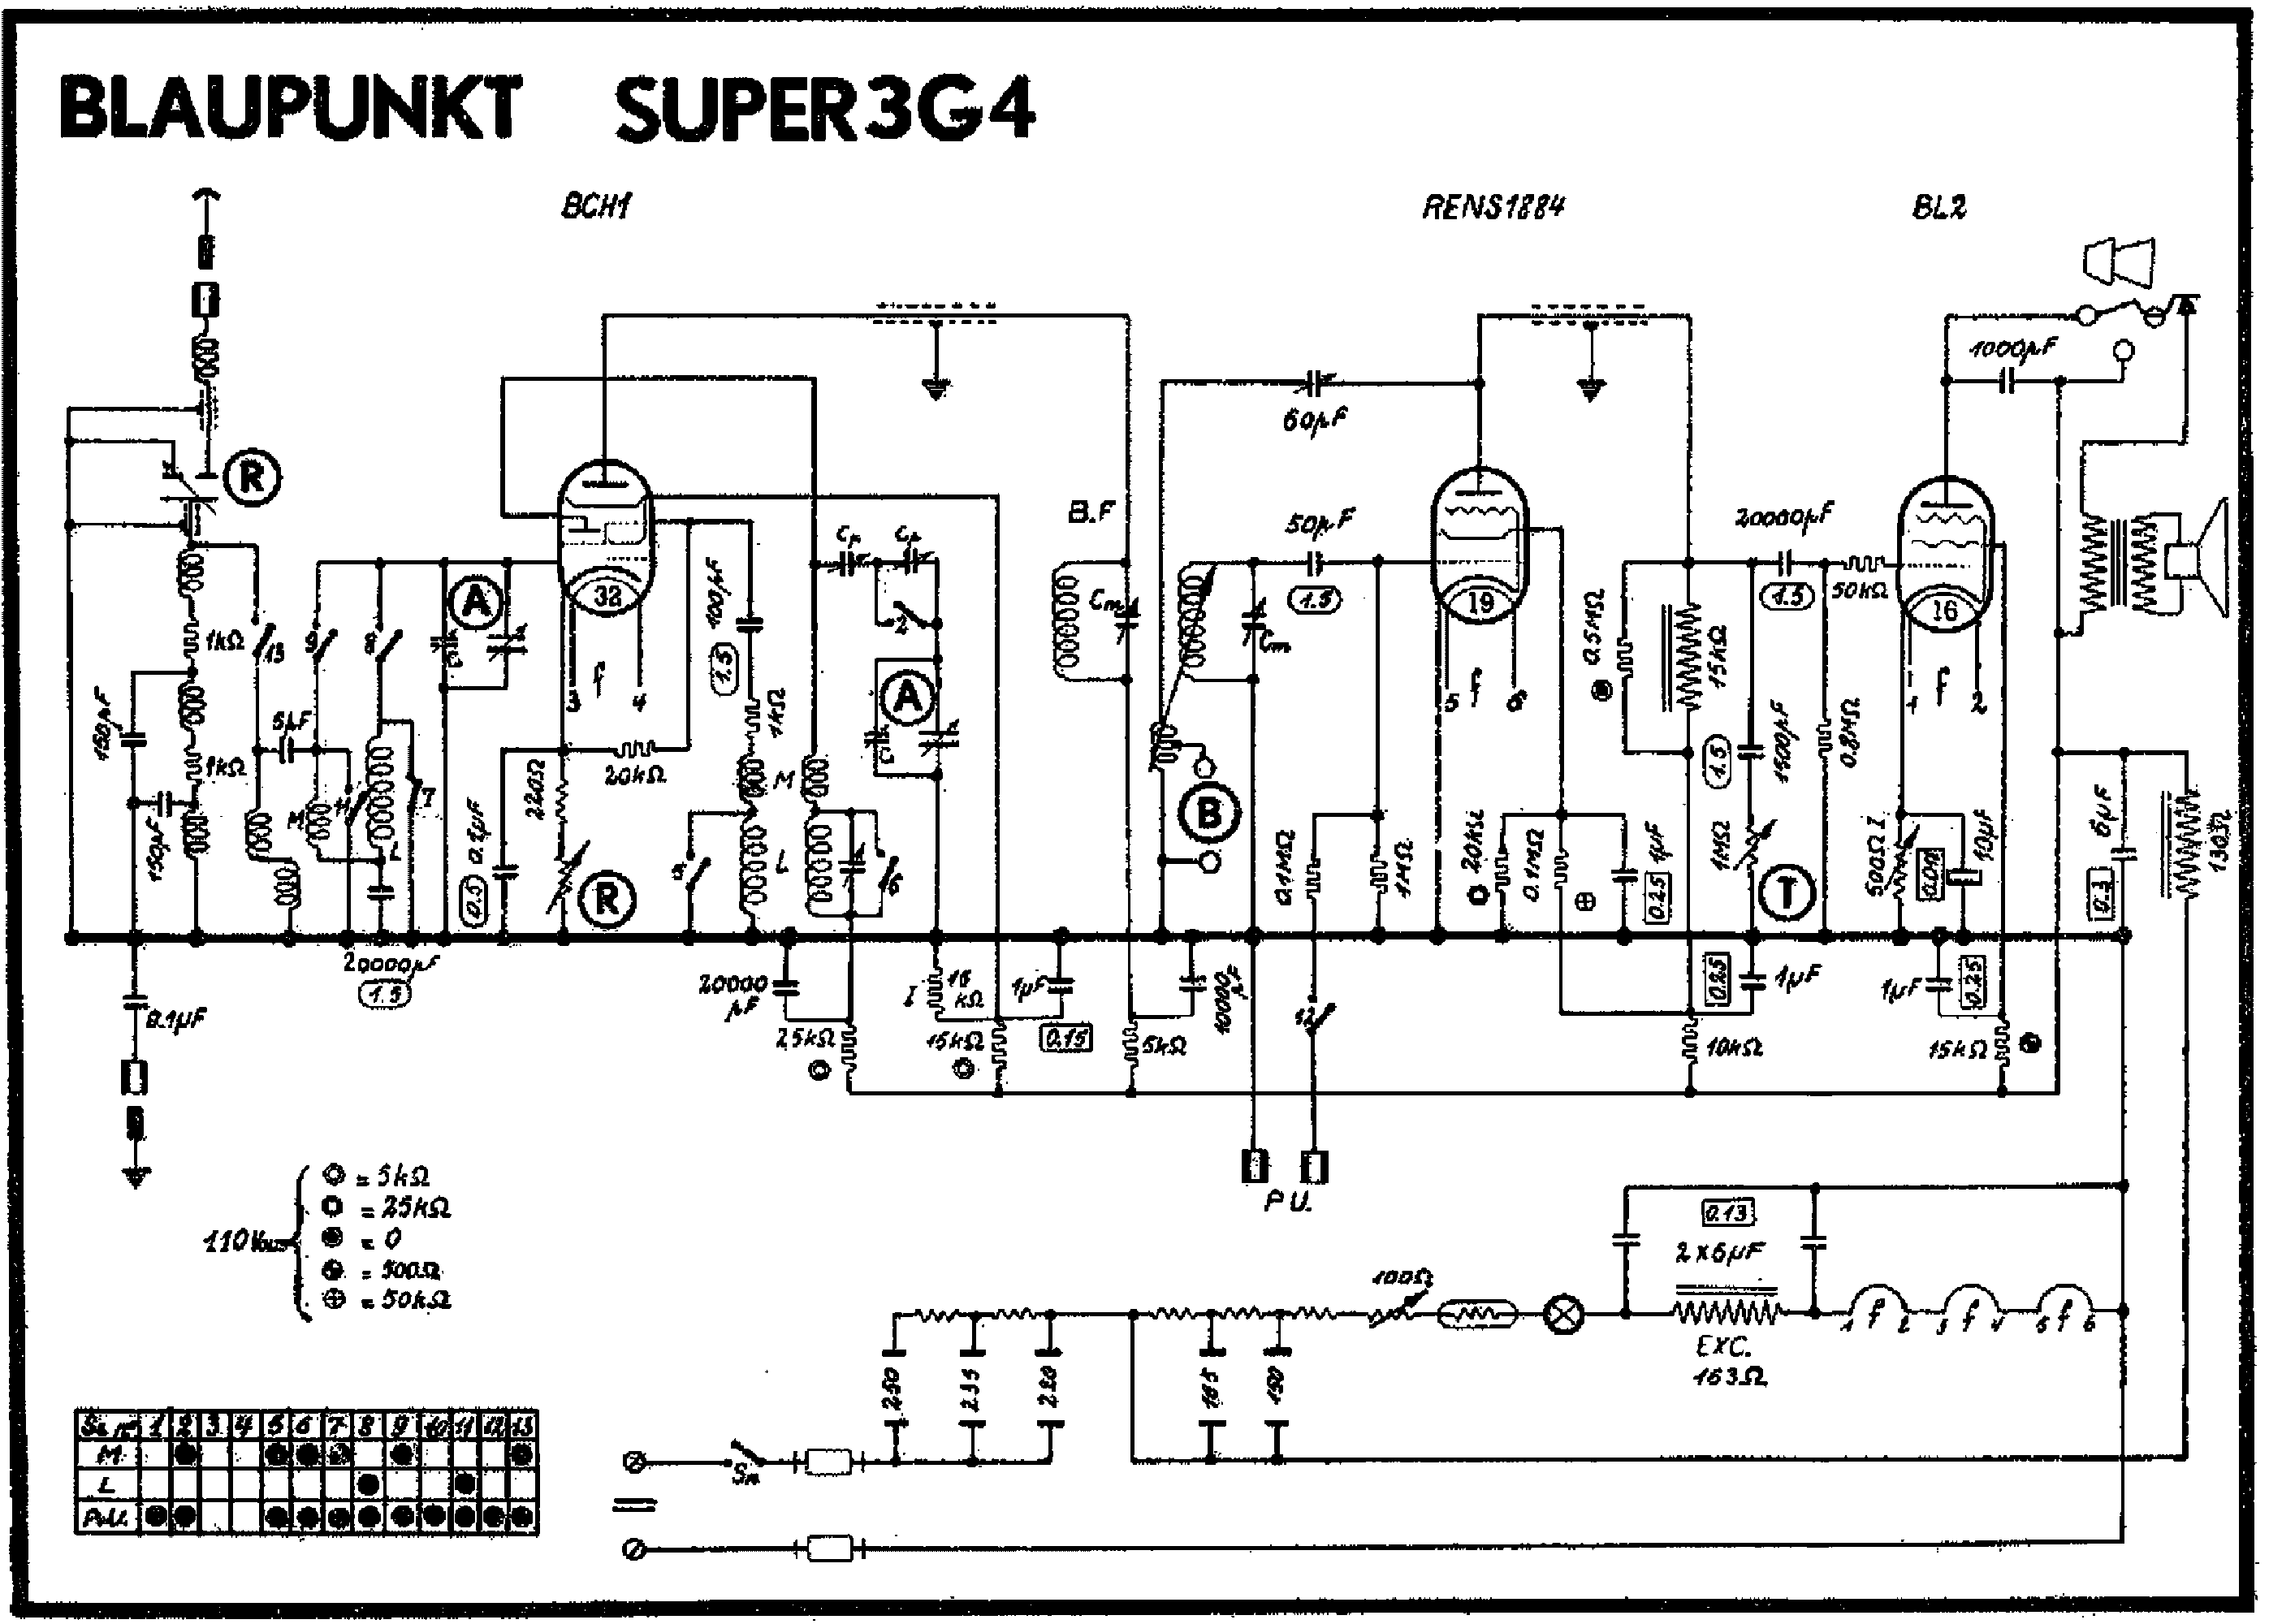 BLAUPUNKT 4GW65 RECEIVER SCH Service Manual download